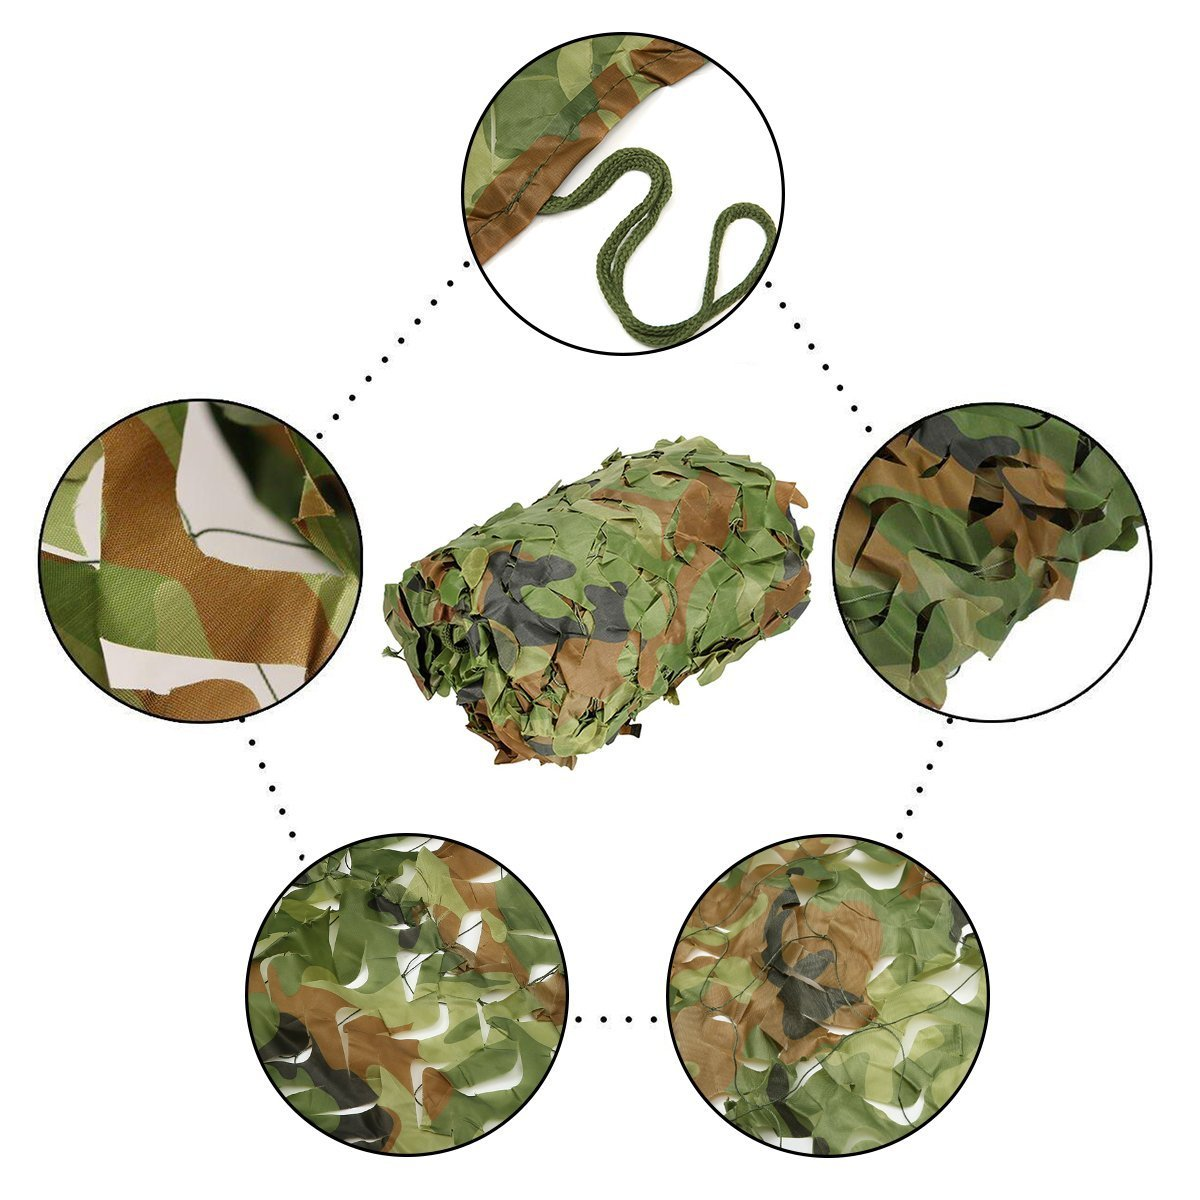 elecfan 10 ft x 10 ft Woodland Camo Netting, Outdoor Camouflage Netting Military, Camping Hunting Shooting Blind Sunscreen Camo Net Watching Hide Party Decorations